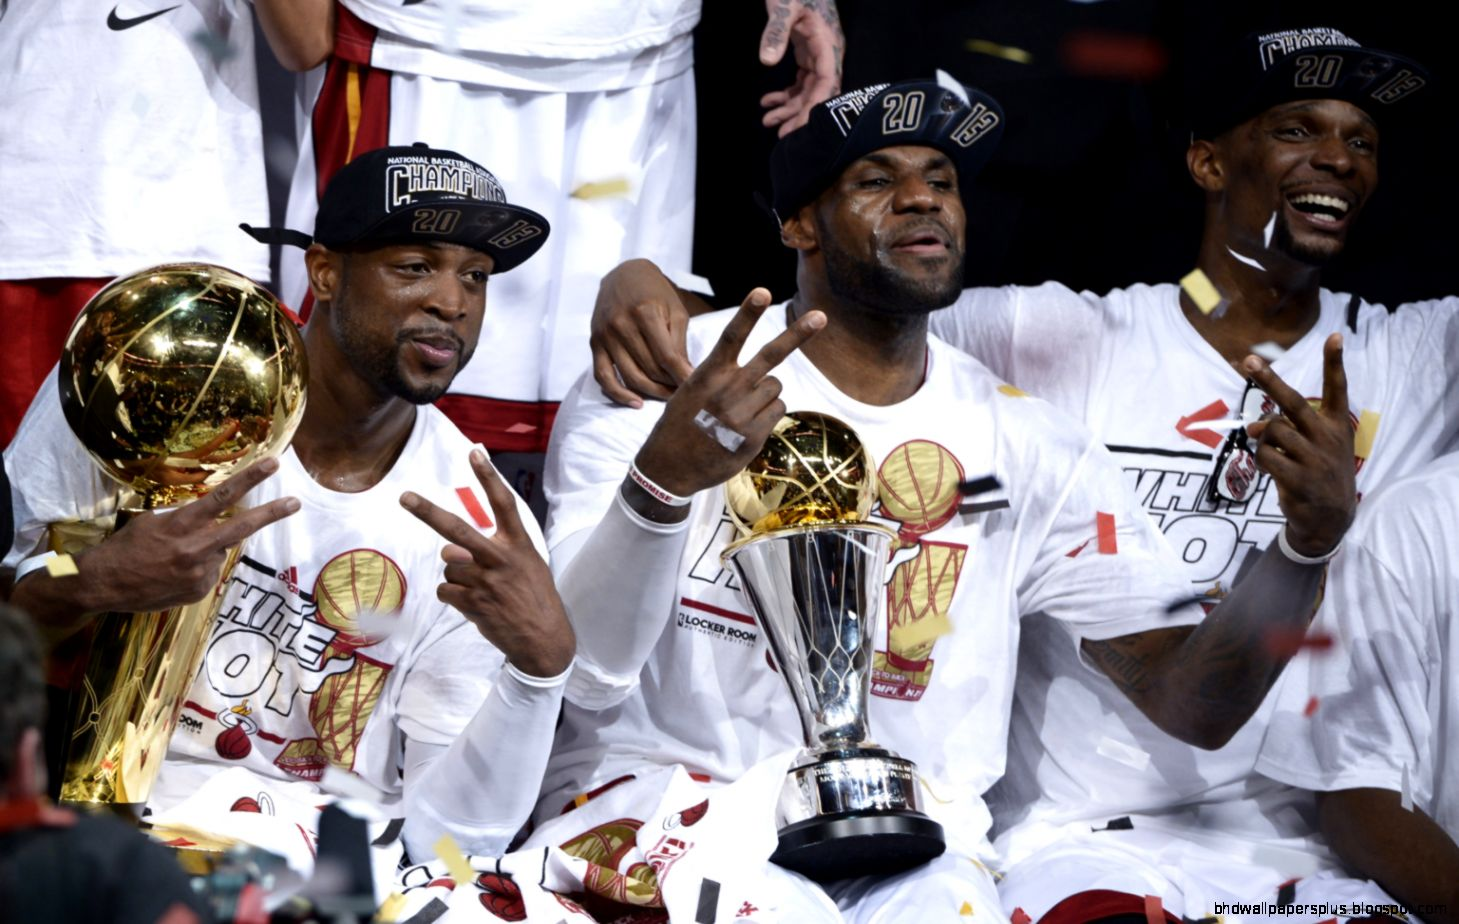 heat-win-nba-championship-with-95-88-win-over-spurs-in-2013-finals